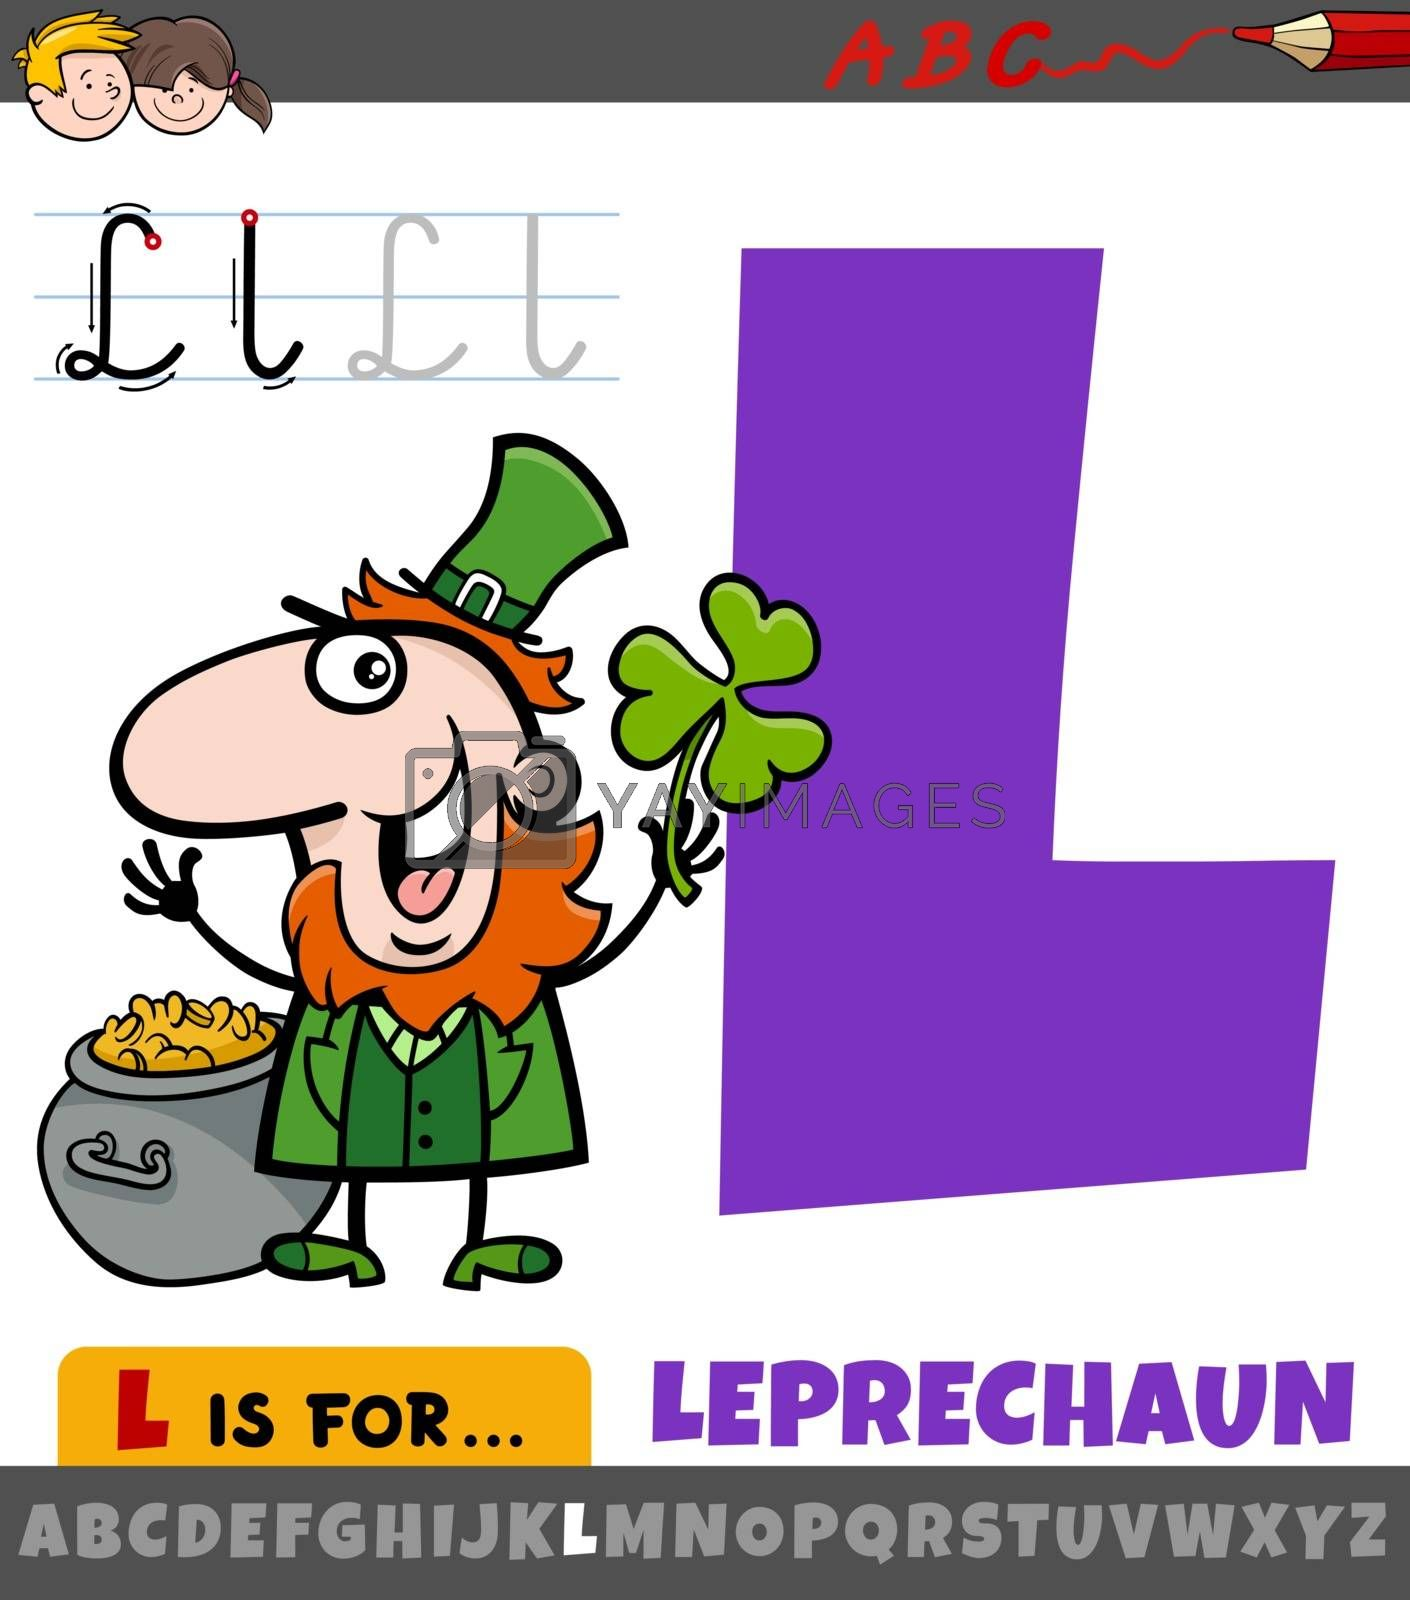 Educational cartoon illustration of letter L from alphabet with leprechaun character for children